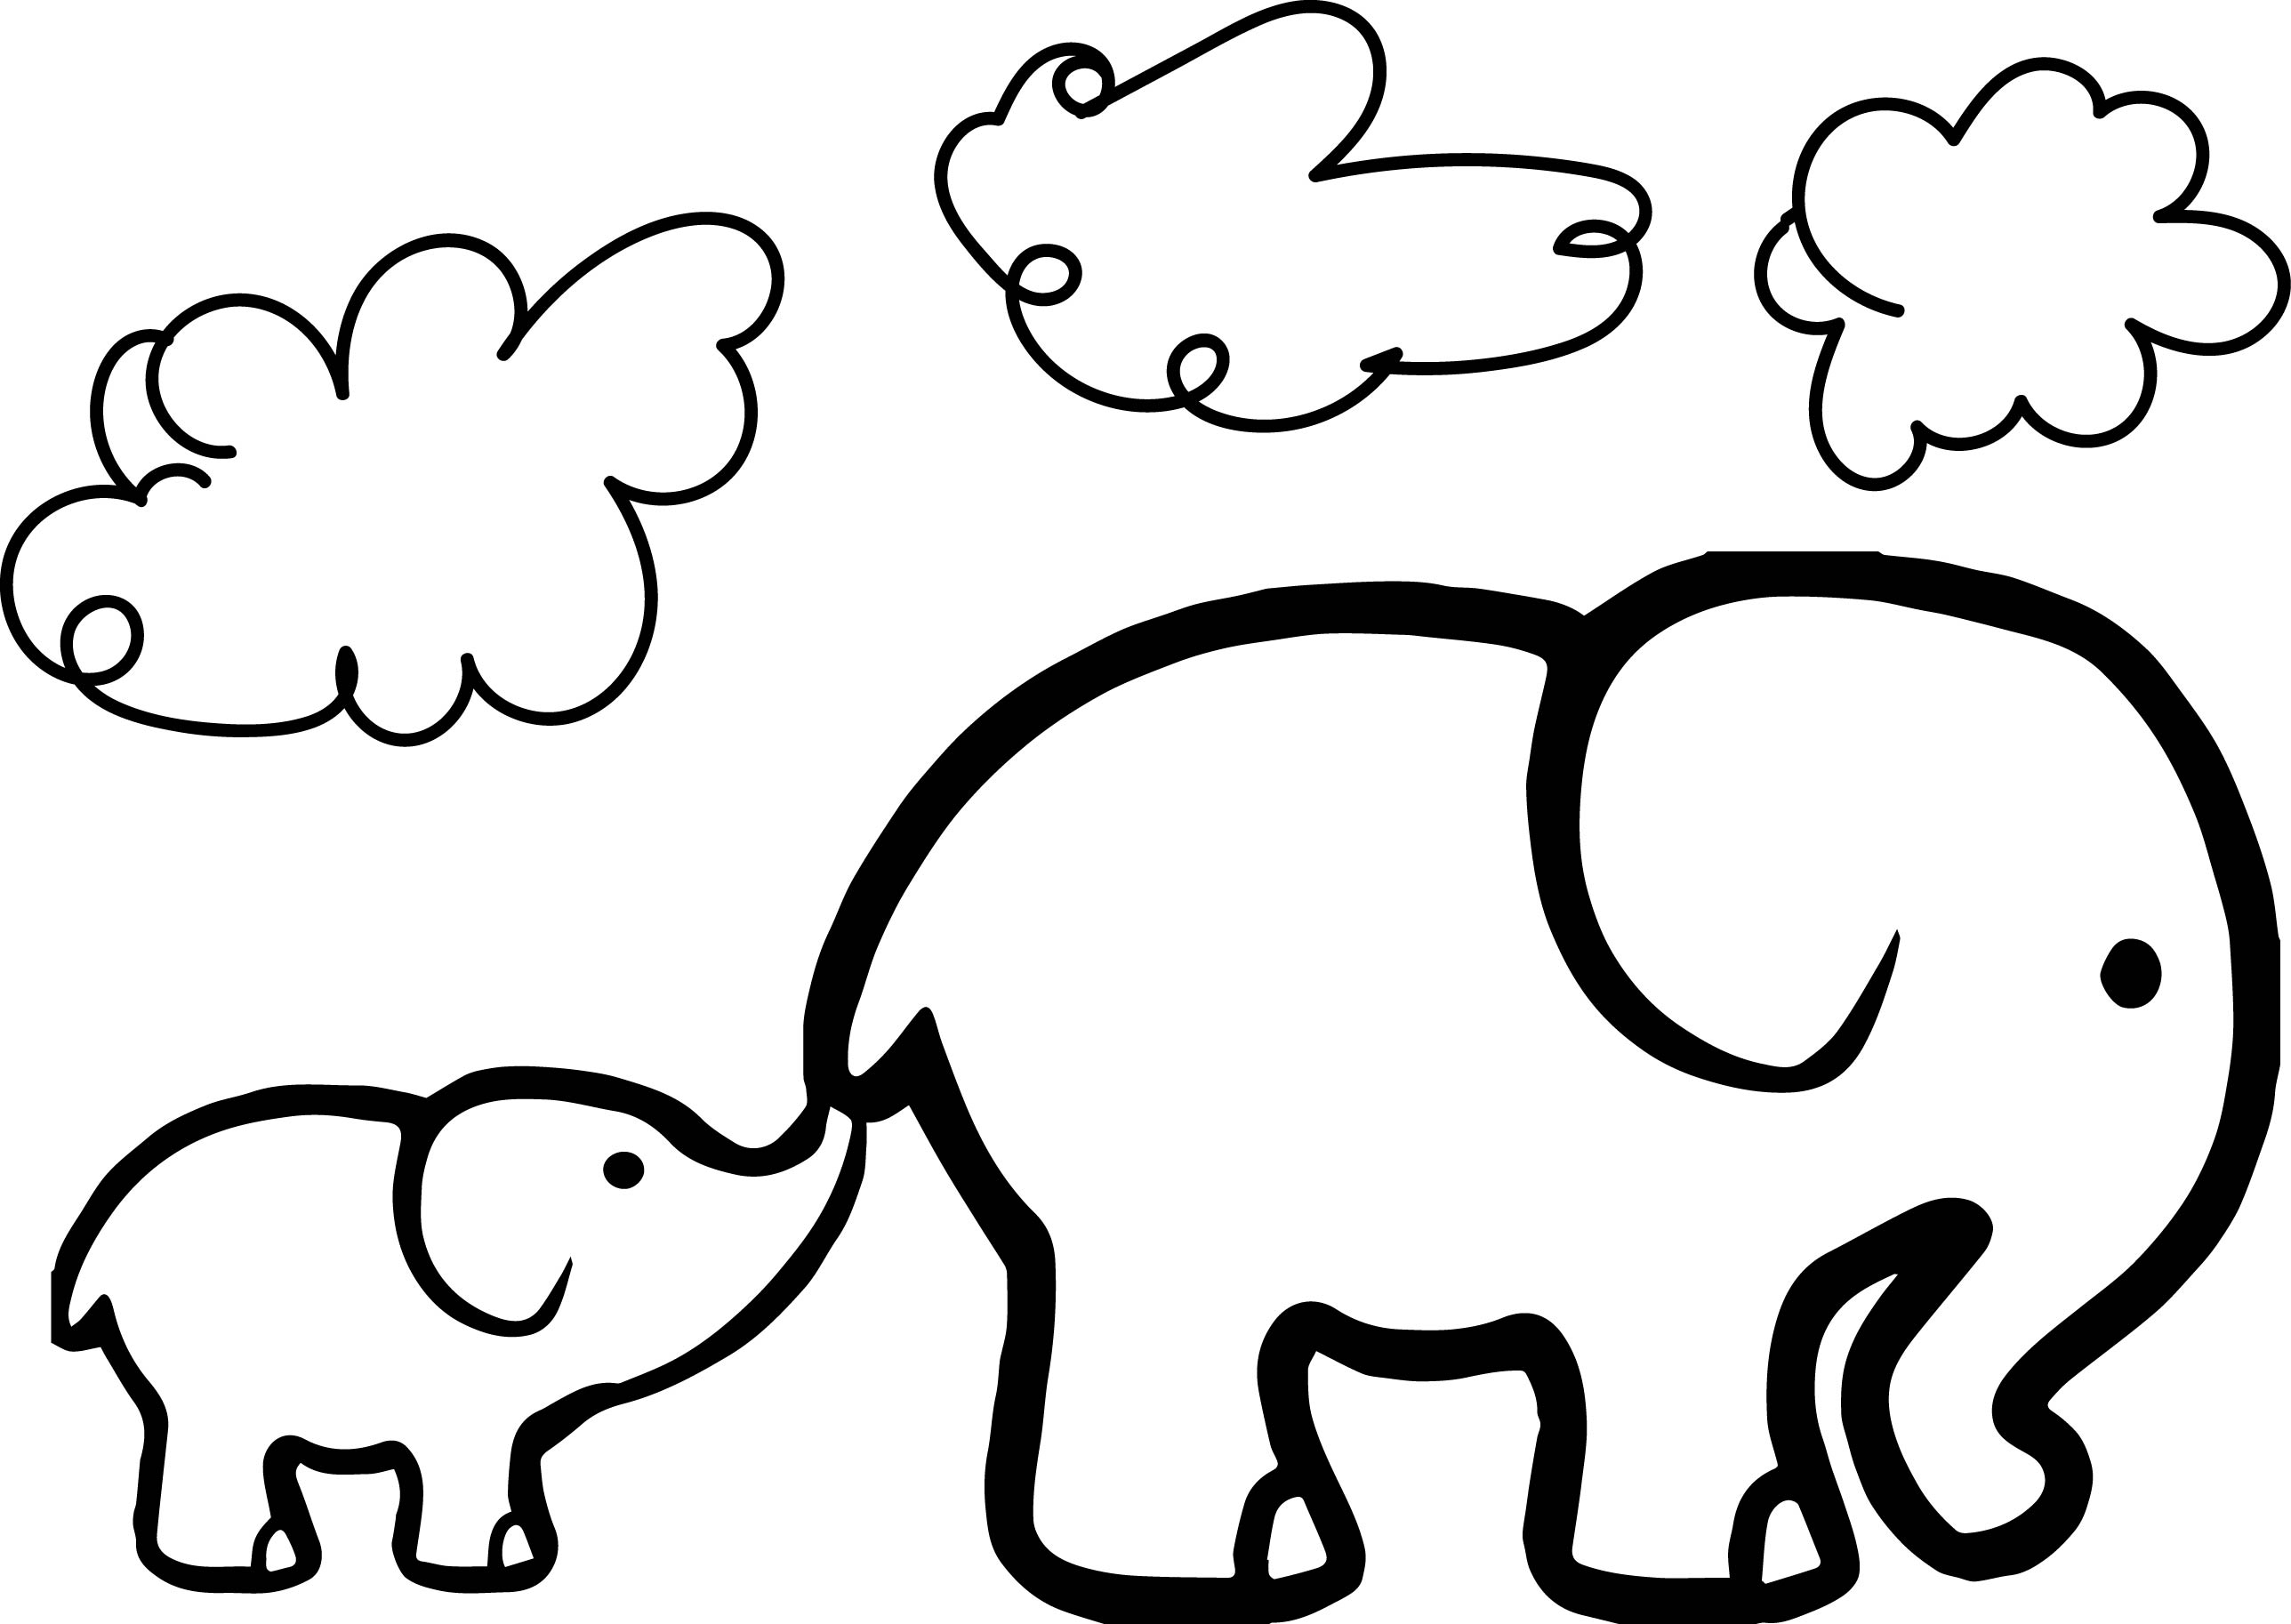 colouring pictures of elephant elephant drawing tumblr at getdrawings free download colouring of elephant pictures